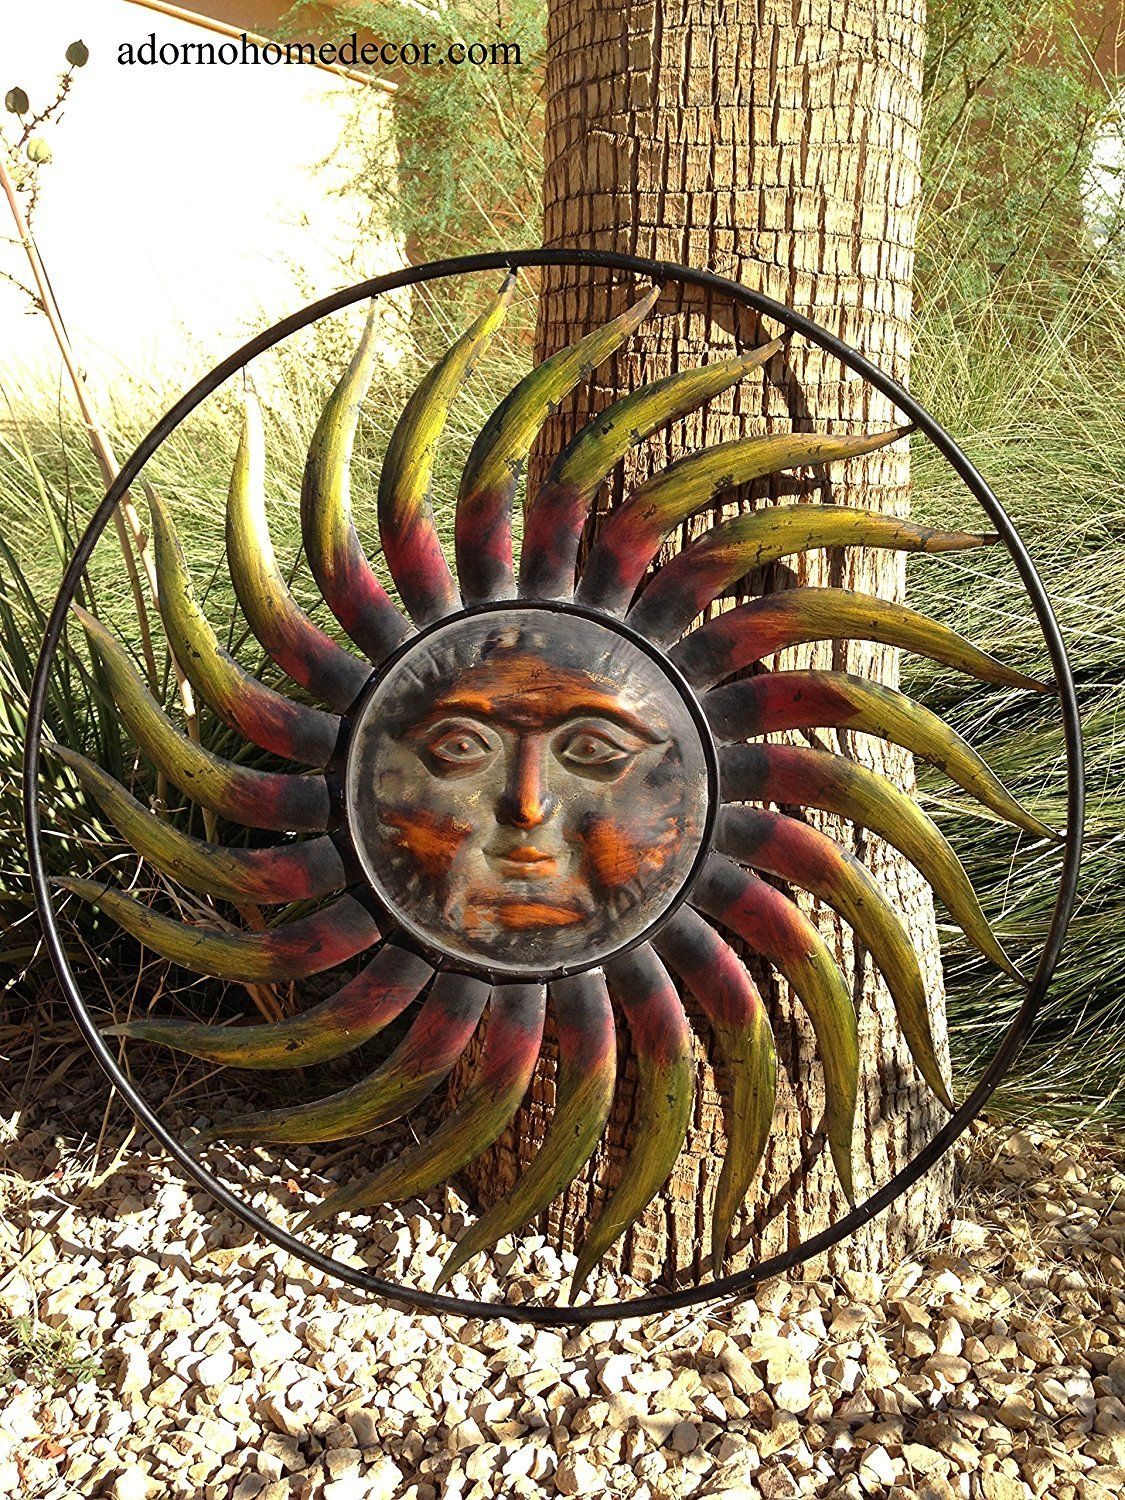 Large round metal sun wall decor garden art visit the image link